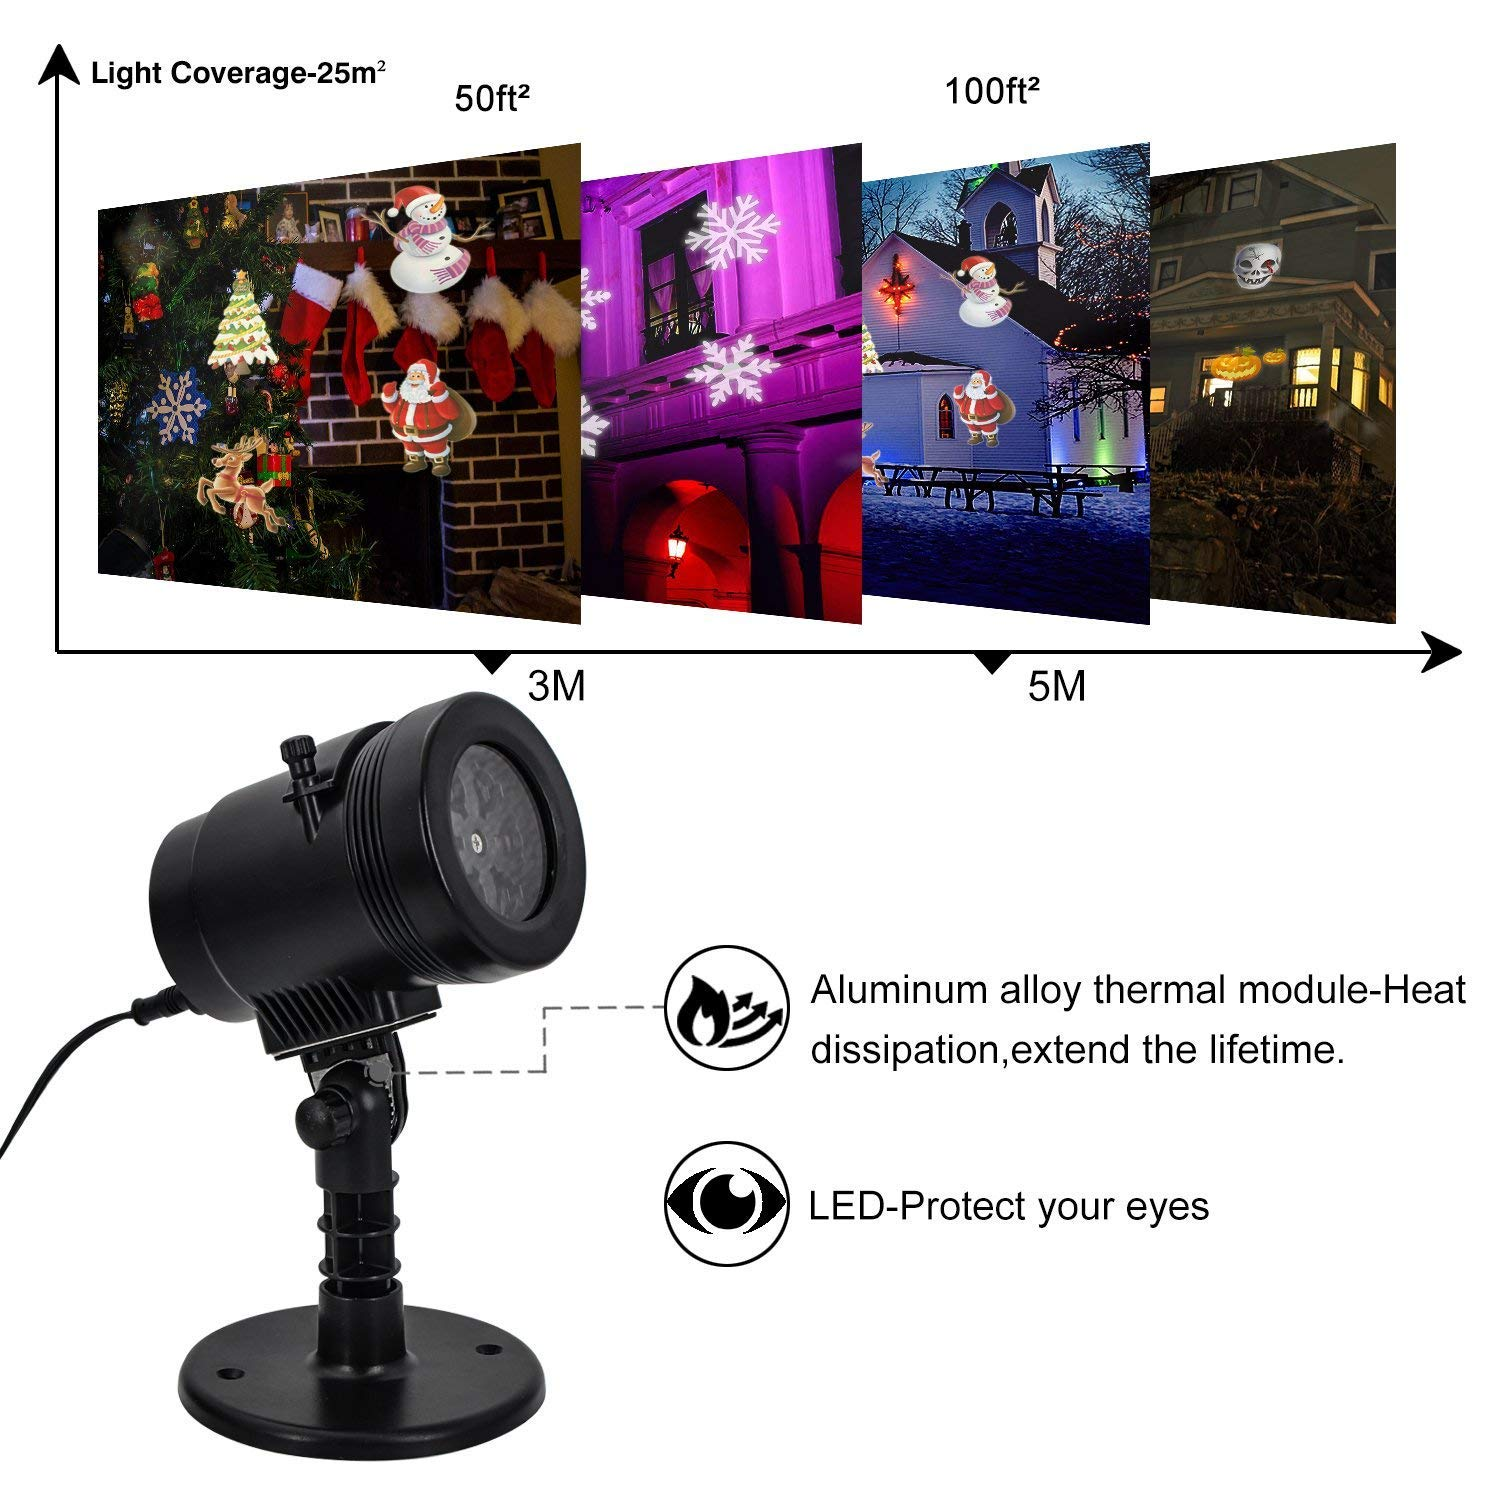 Christmas LED Projector Light, Outdoor Waterproof High Brightness Light Show with 32ft Cable & Remote Control for Christmas, Party and Holiday Decorations (16 Patterns) by Tunnkit (Image #3)